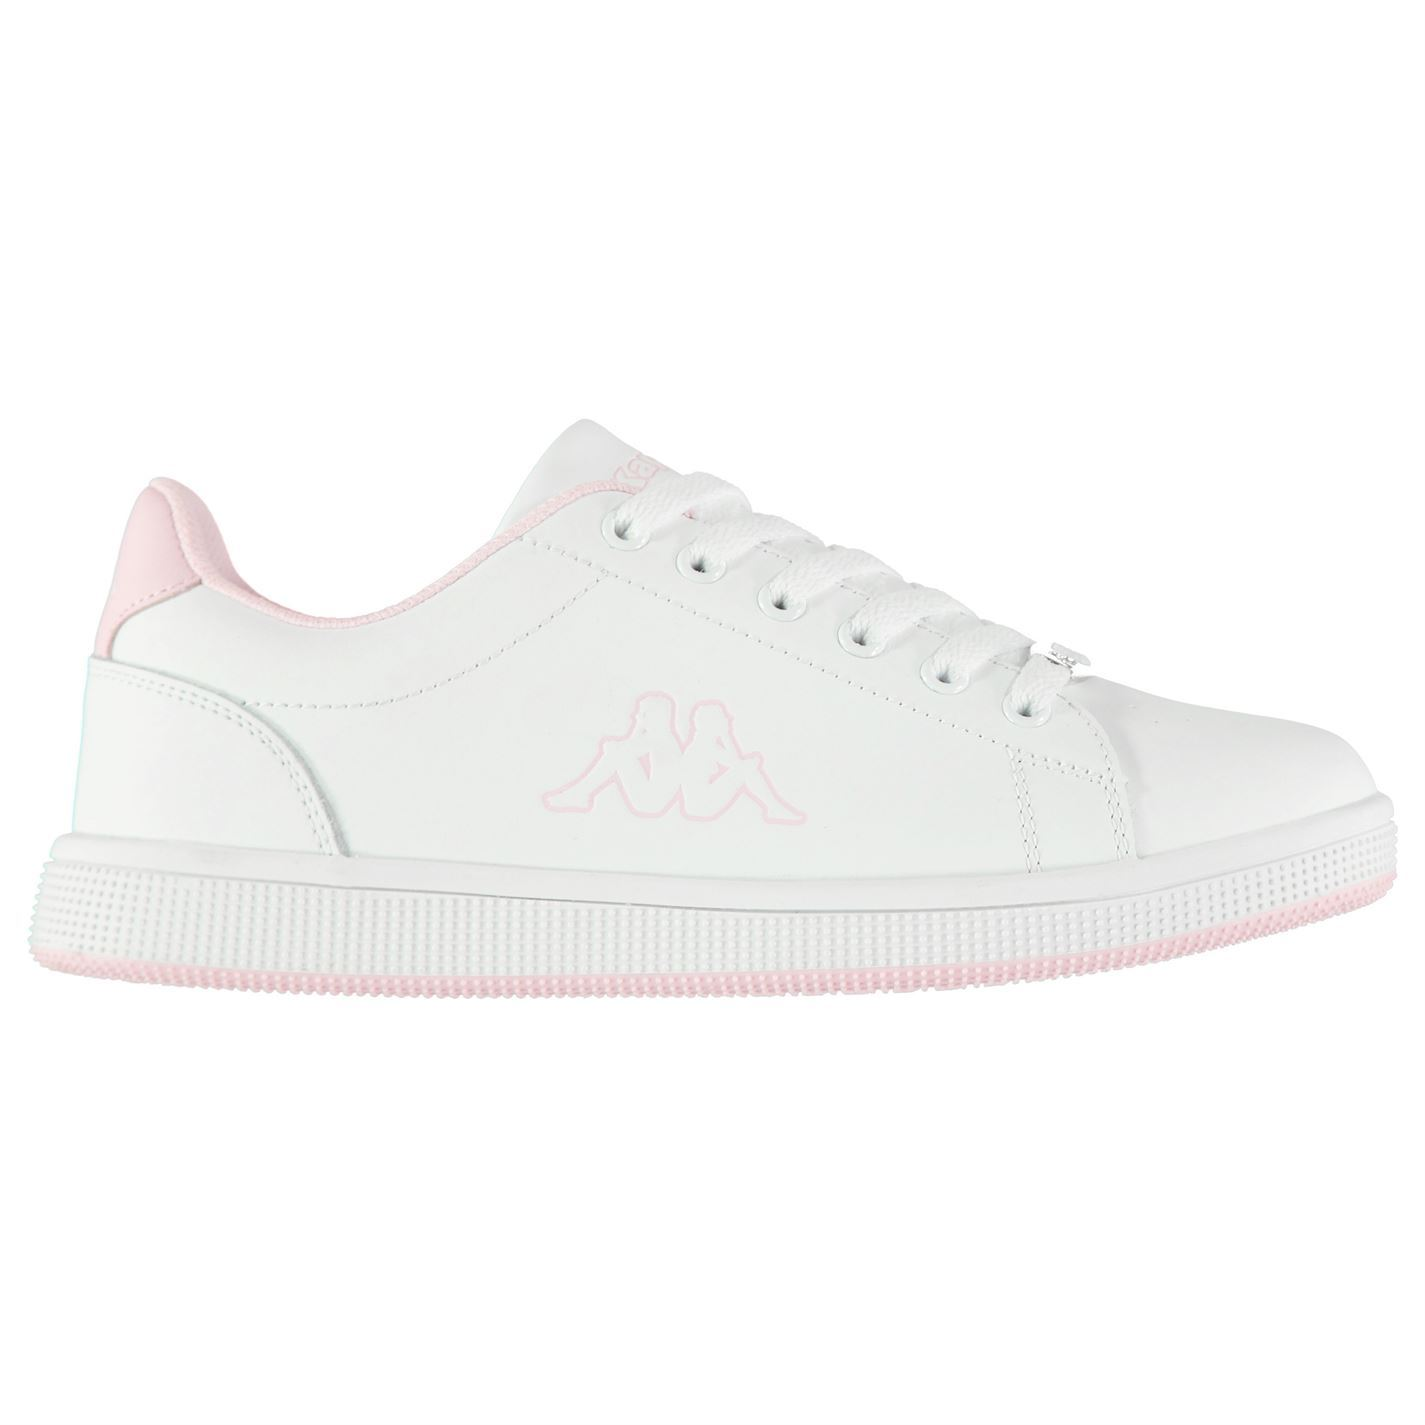 Details about Kappa Maresas DLX Trainers Womens WhitePink Sports trainers Sneakers